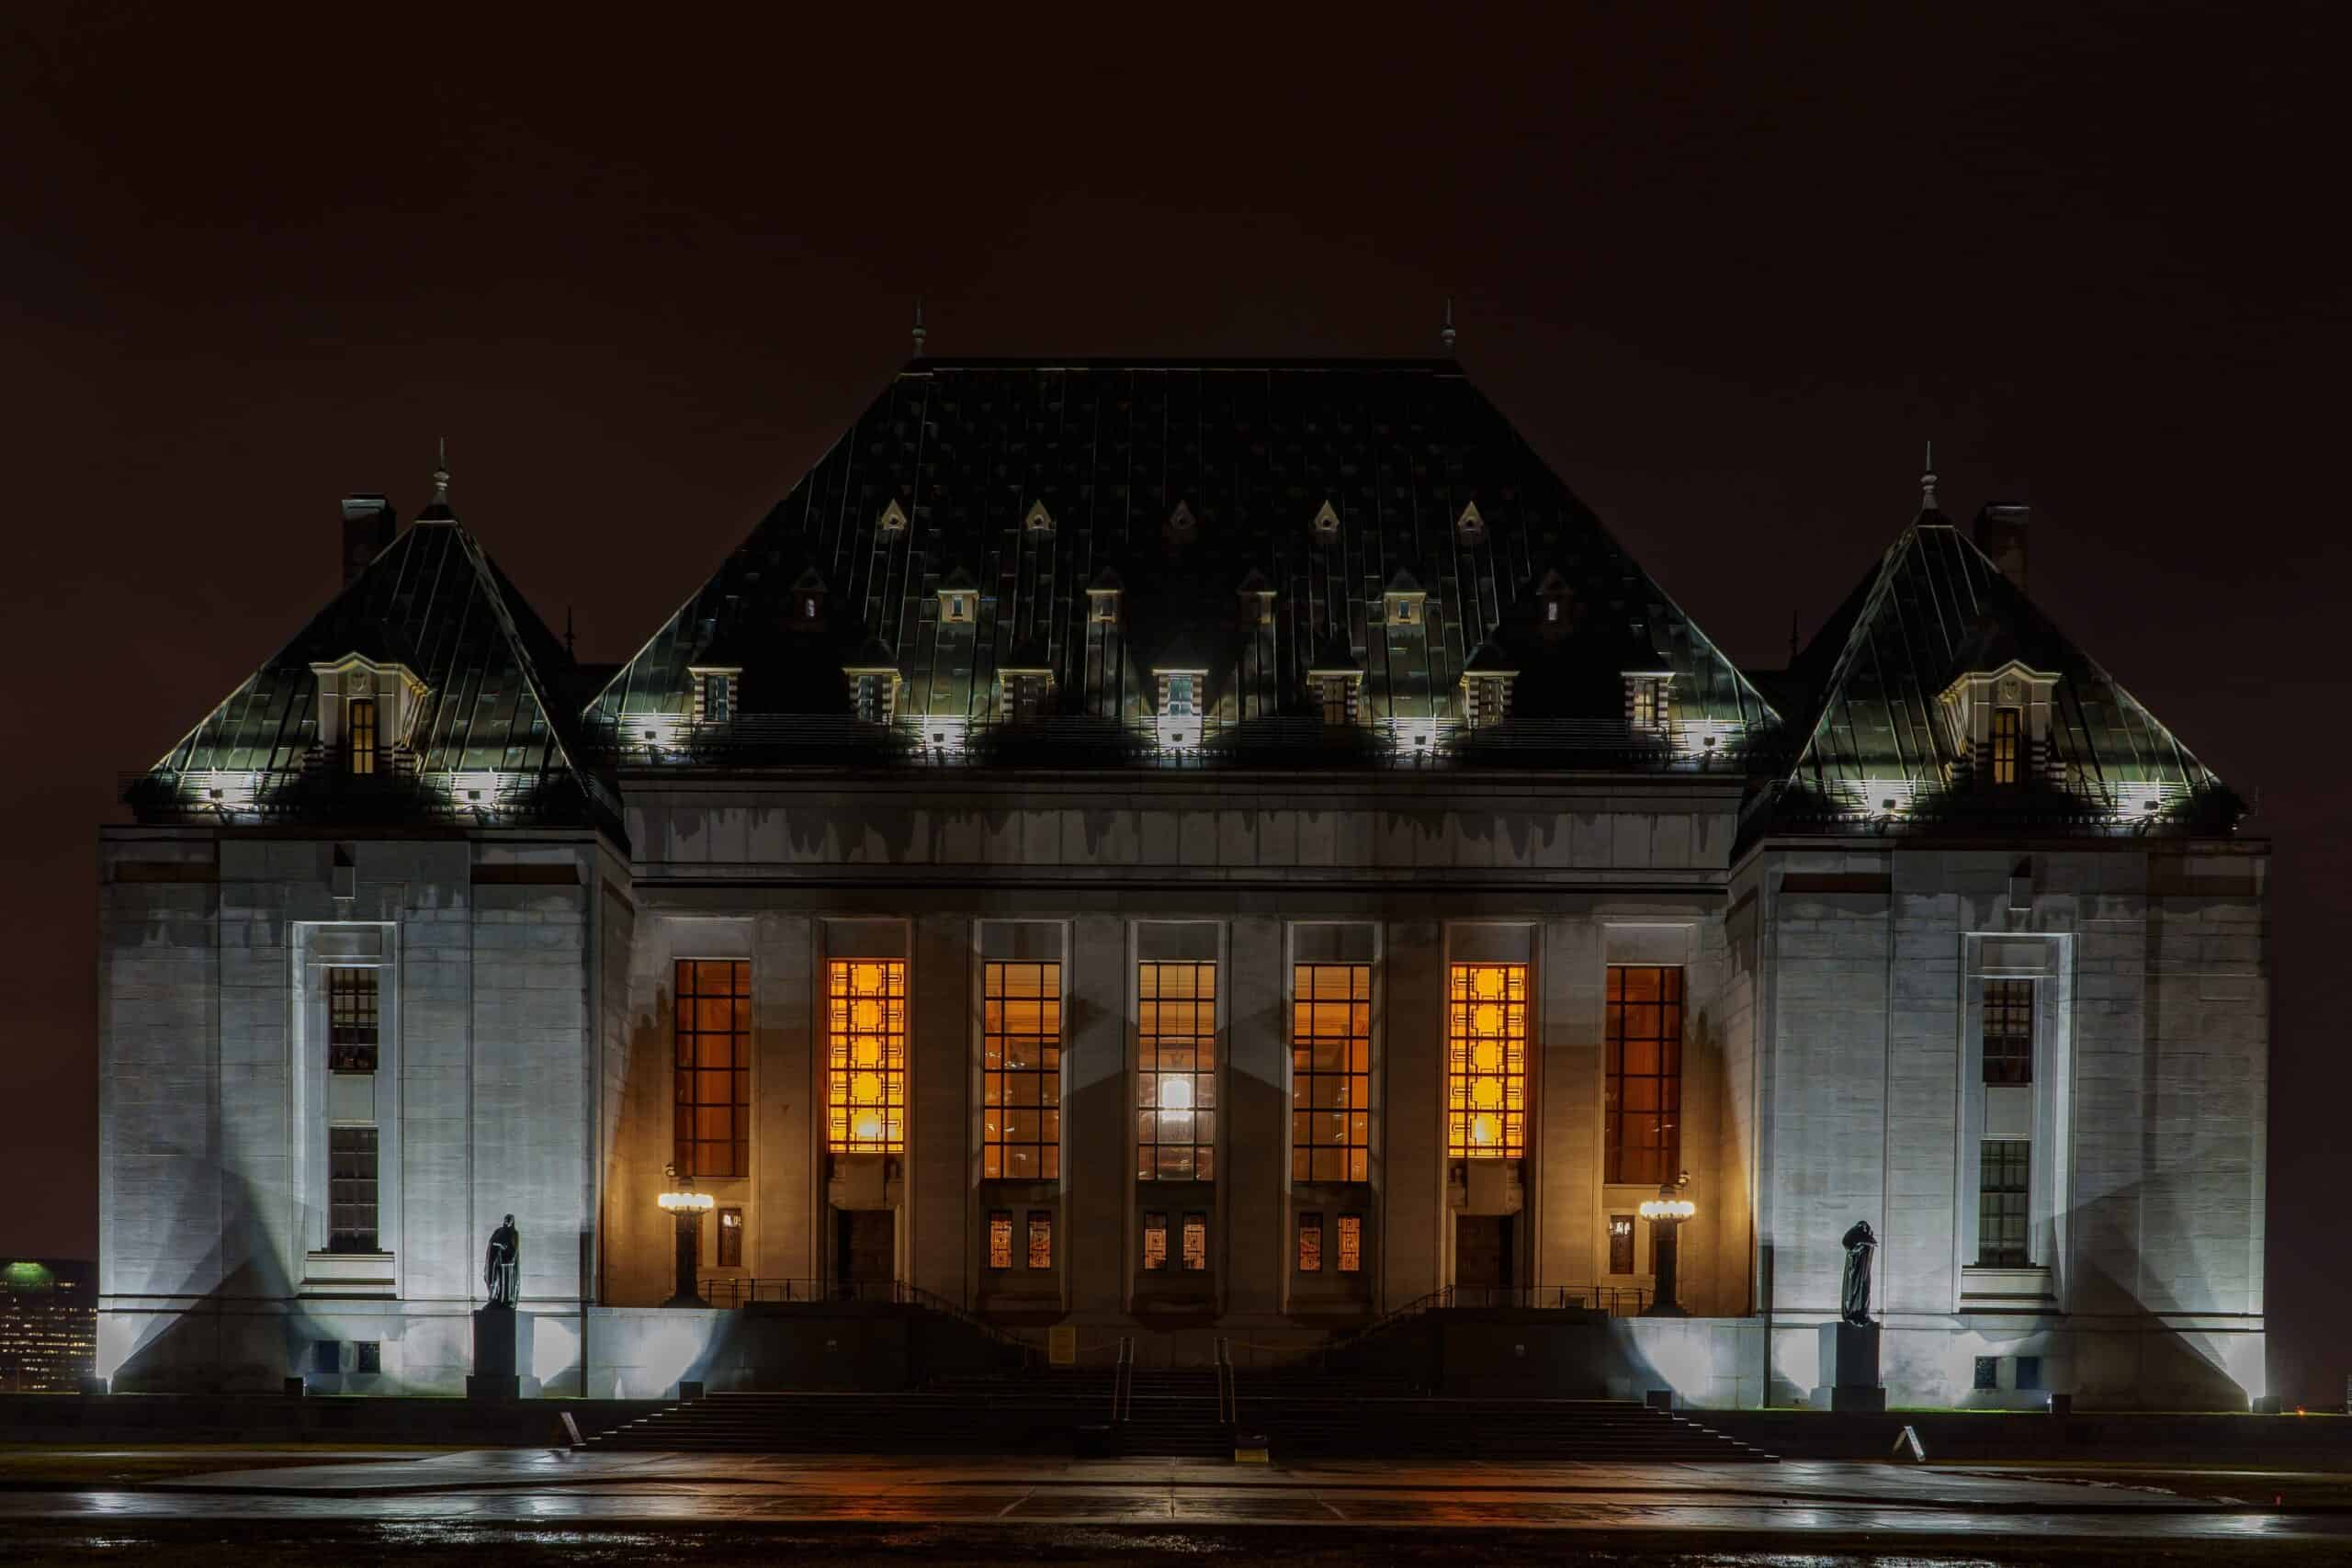 the Supreme Court building at night